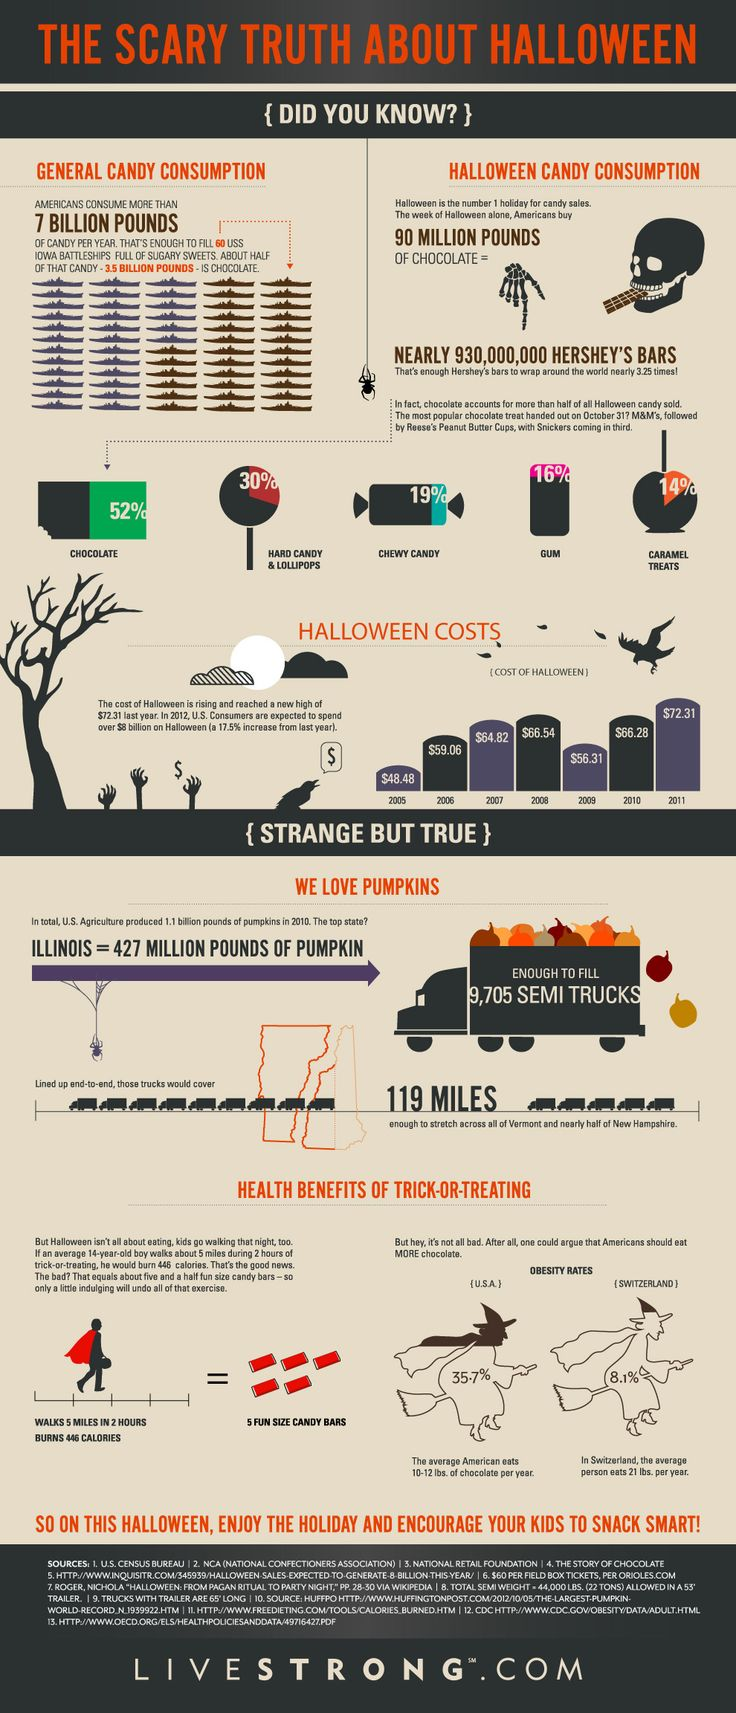 #Halloween Candy Infographic... Pretty scary actually! Courtesy of @livestrong (http://www.livestrong.com/blog/scary-truth-about-halloween-infographic/#)